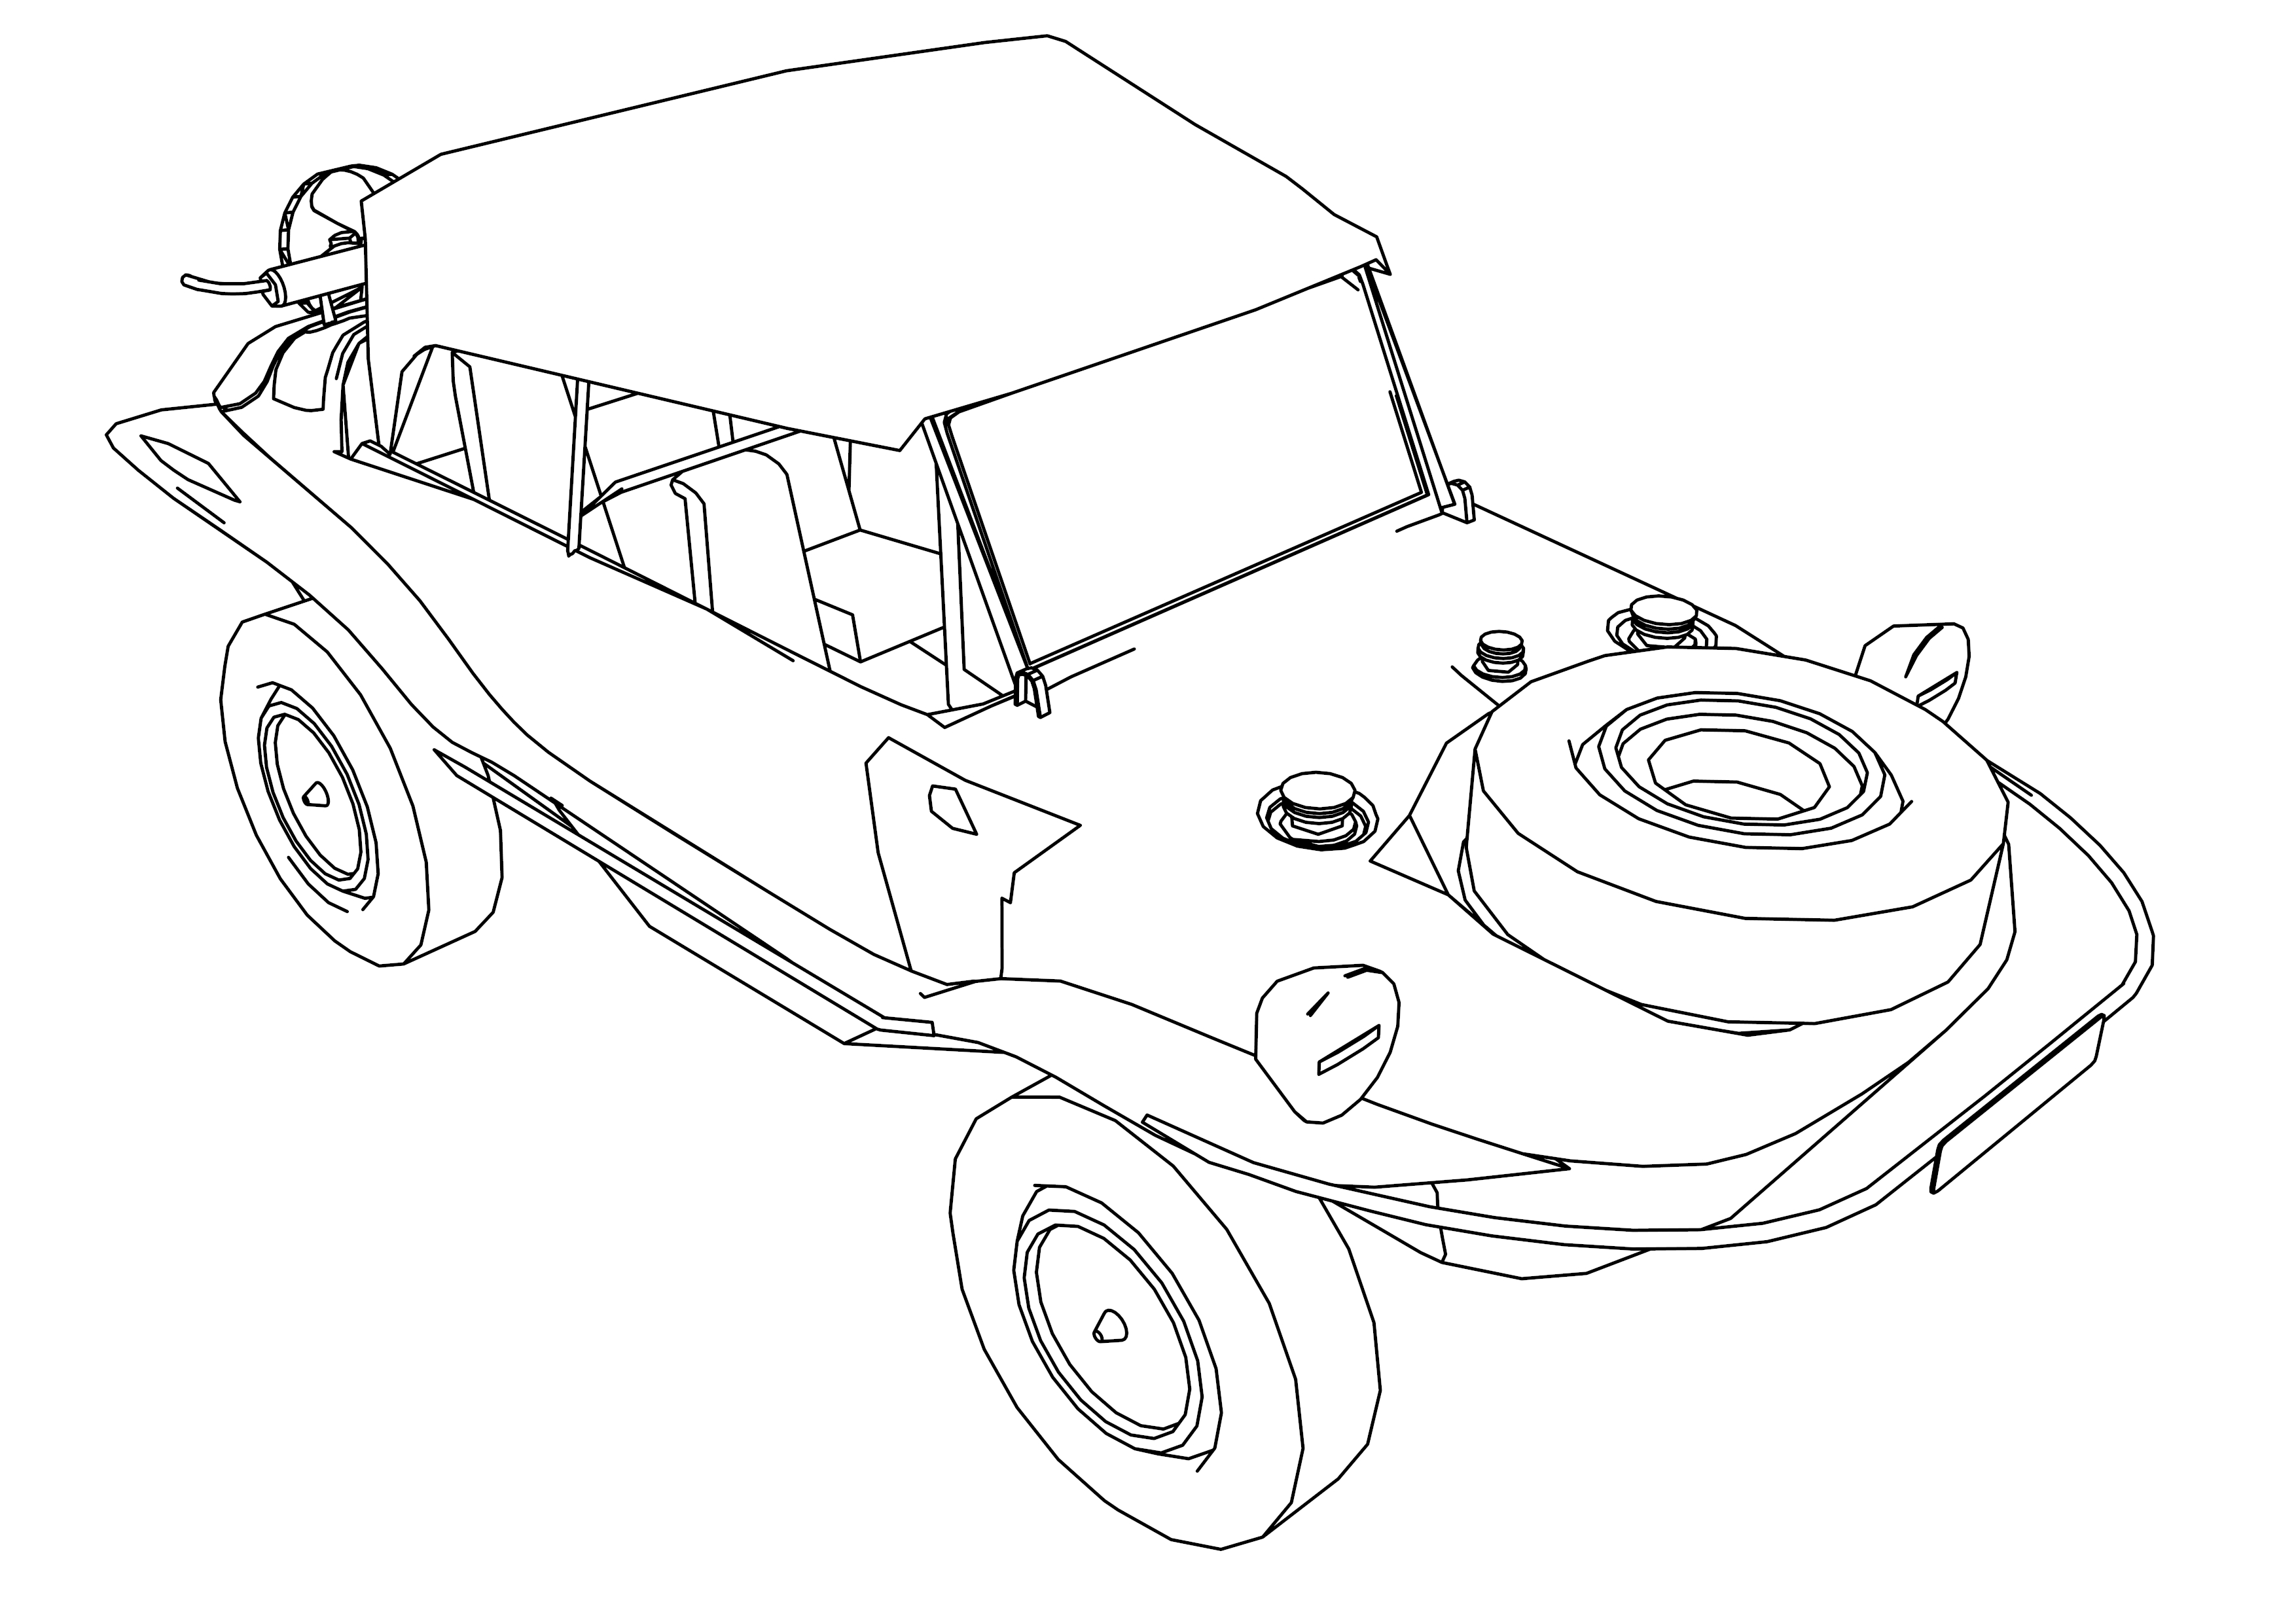 Swim Car Military Small Coloring Page